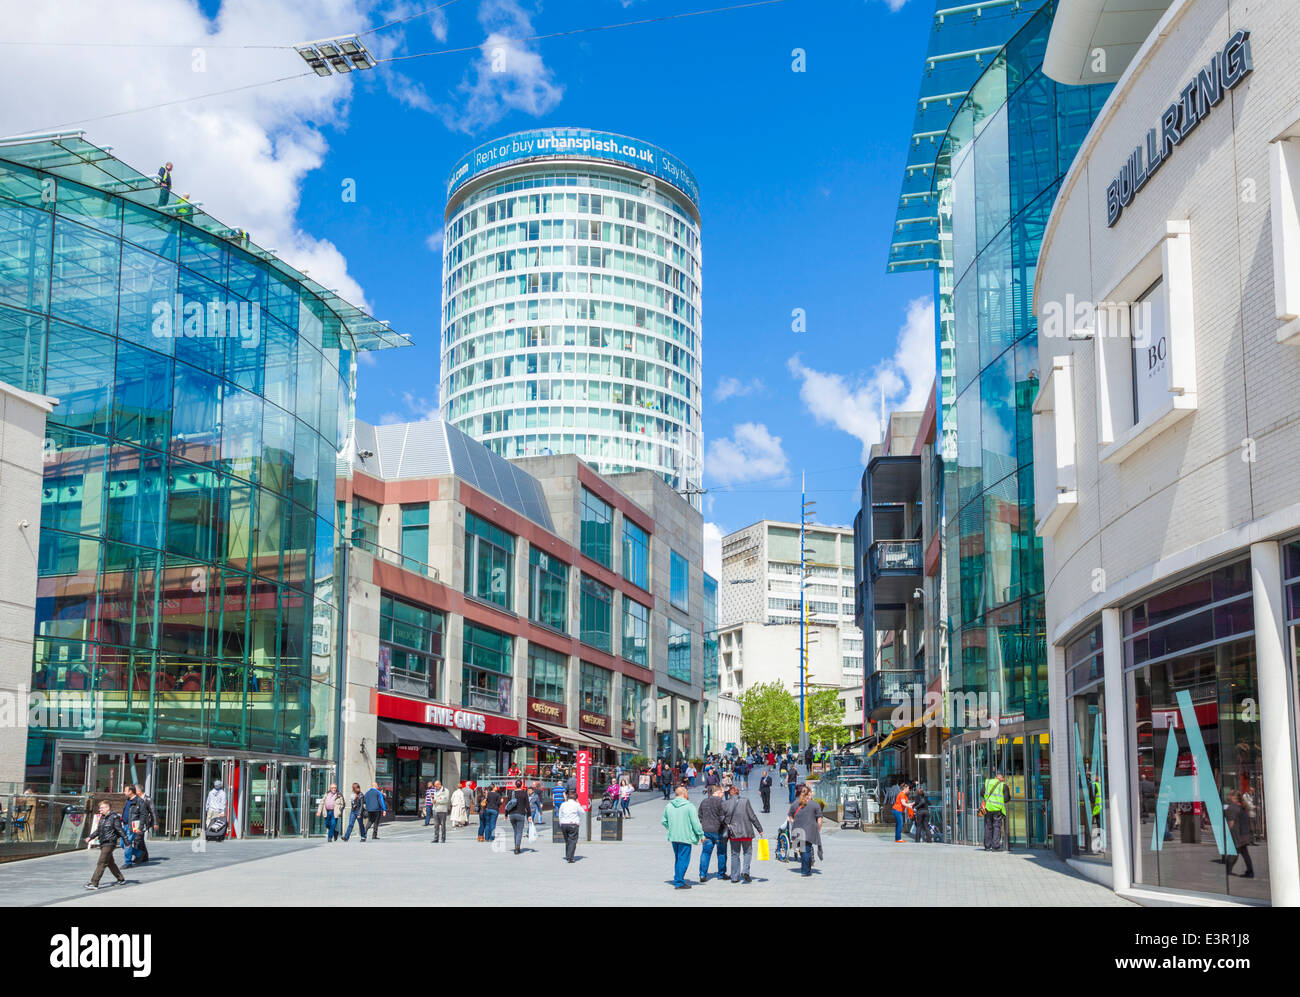 Rotunda and Birmingham Bullring shopping centre, Birmingham City Centre, Birmingham, West Midlands, England, UK, - Stock Image